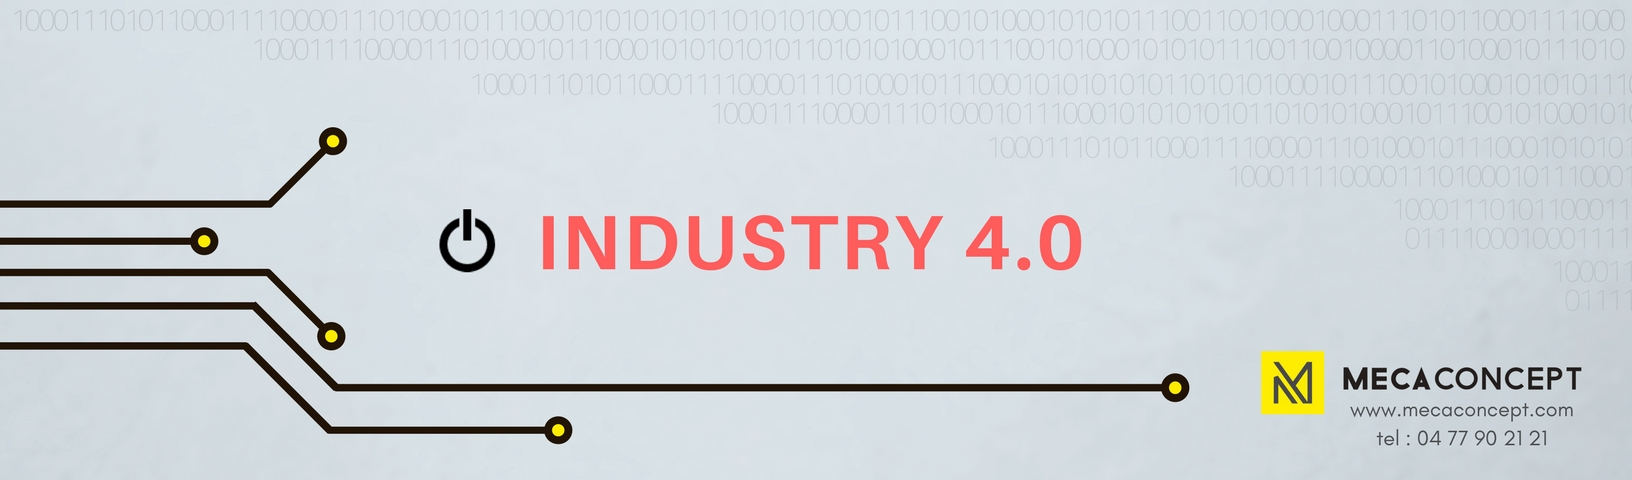 industry 4.0 by mecaconcept